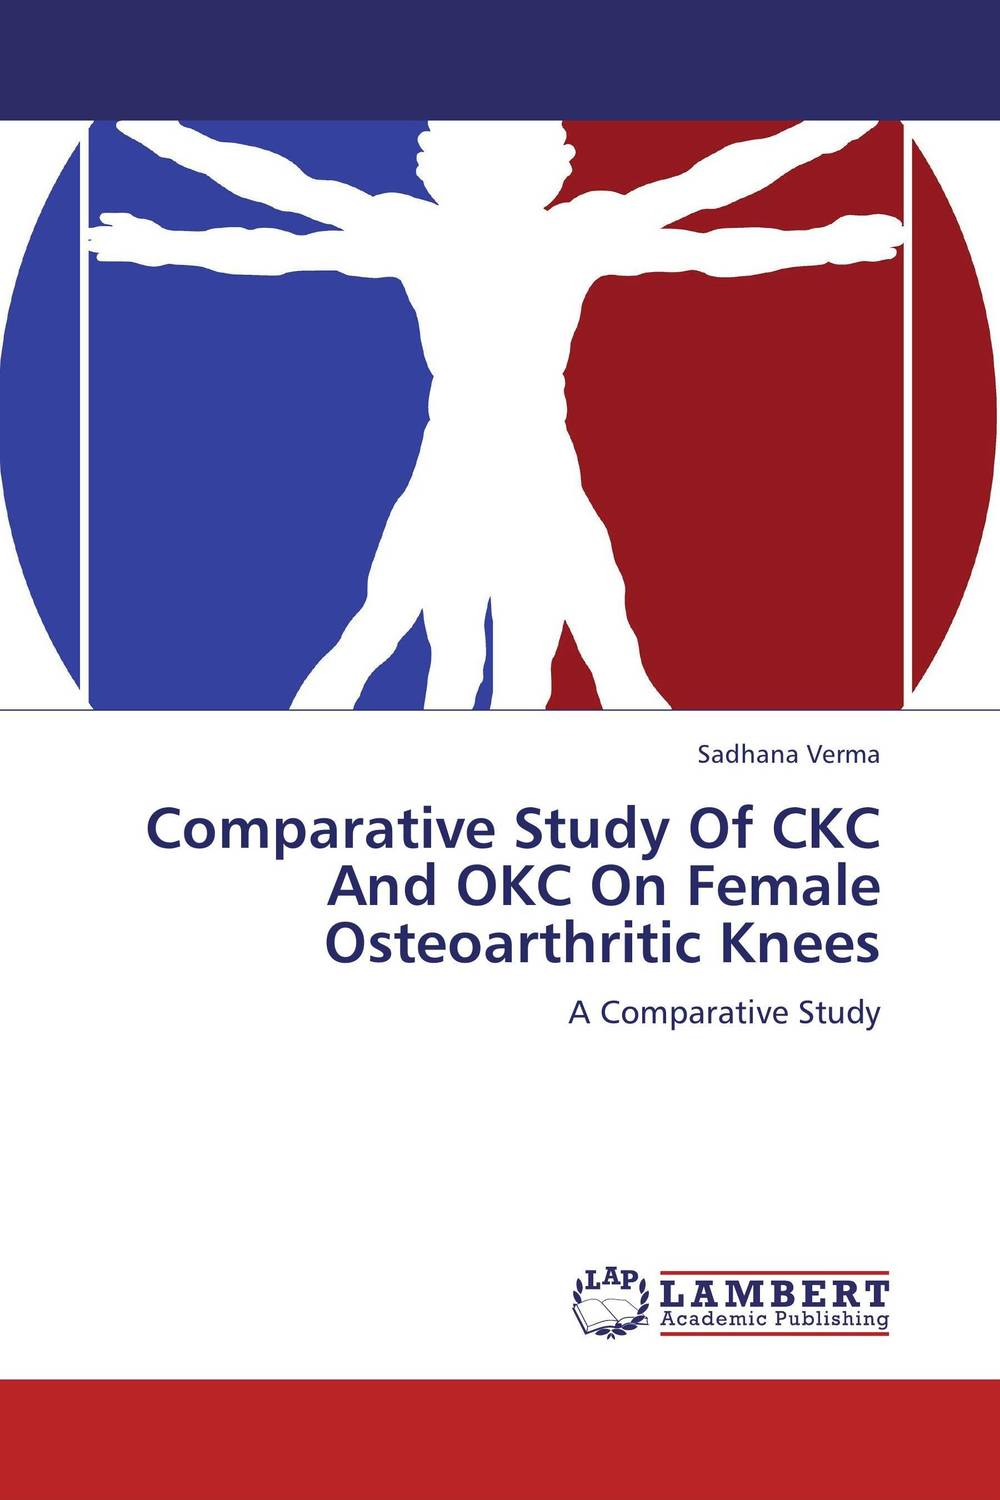 Comparative Study Of CKC And OKC On Female Osteoarthritic Knees a06b 6102 h206 used in good condition